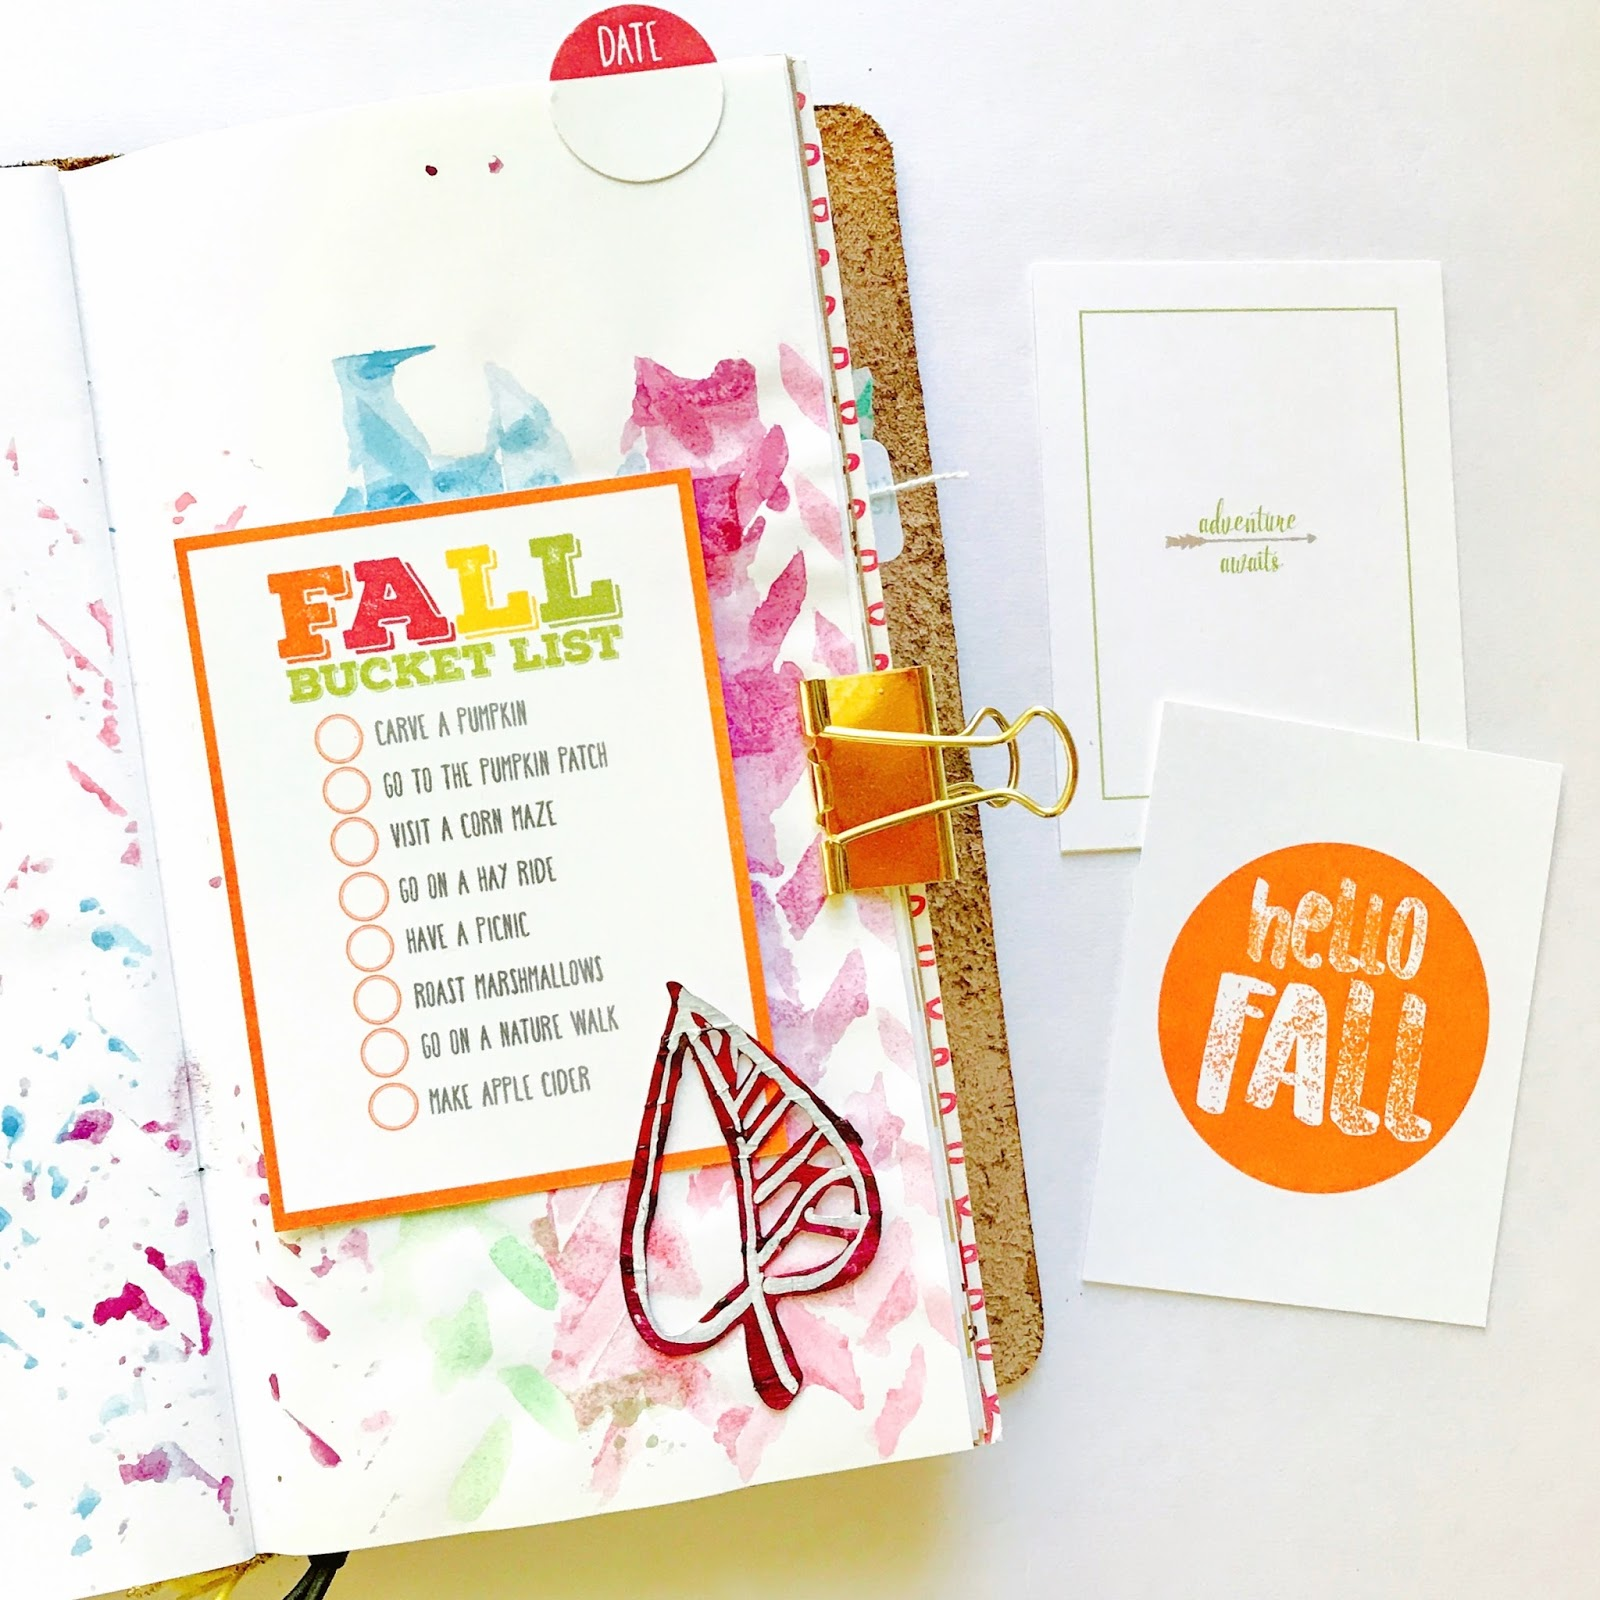 #fall #bucket #list #printable #download #scrapbooking #project #life #3x4 #4x6